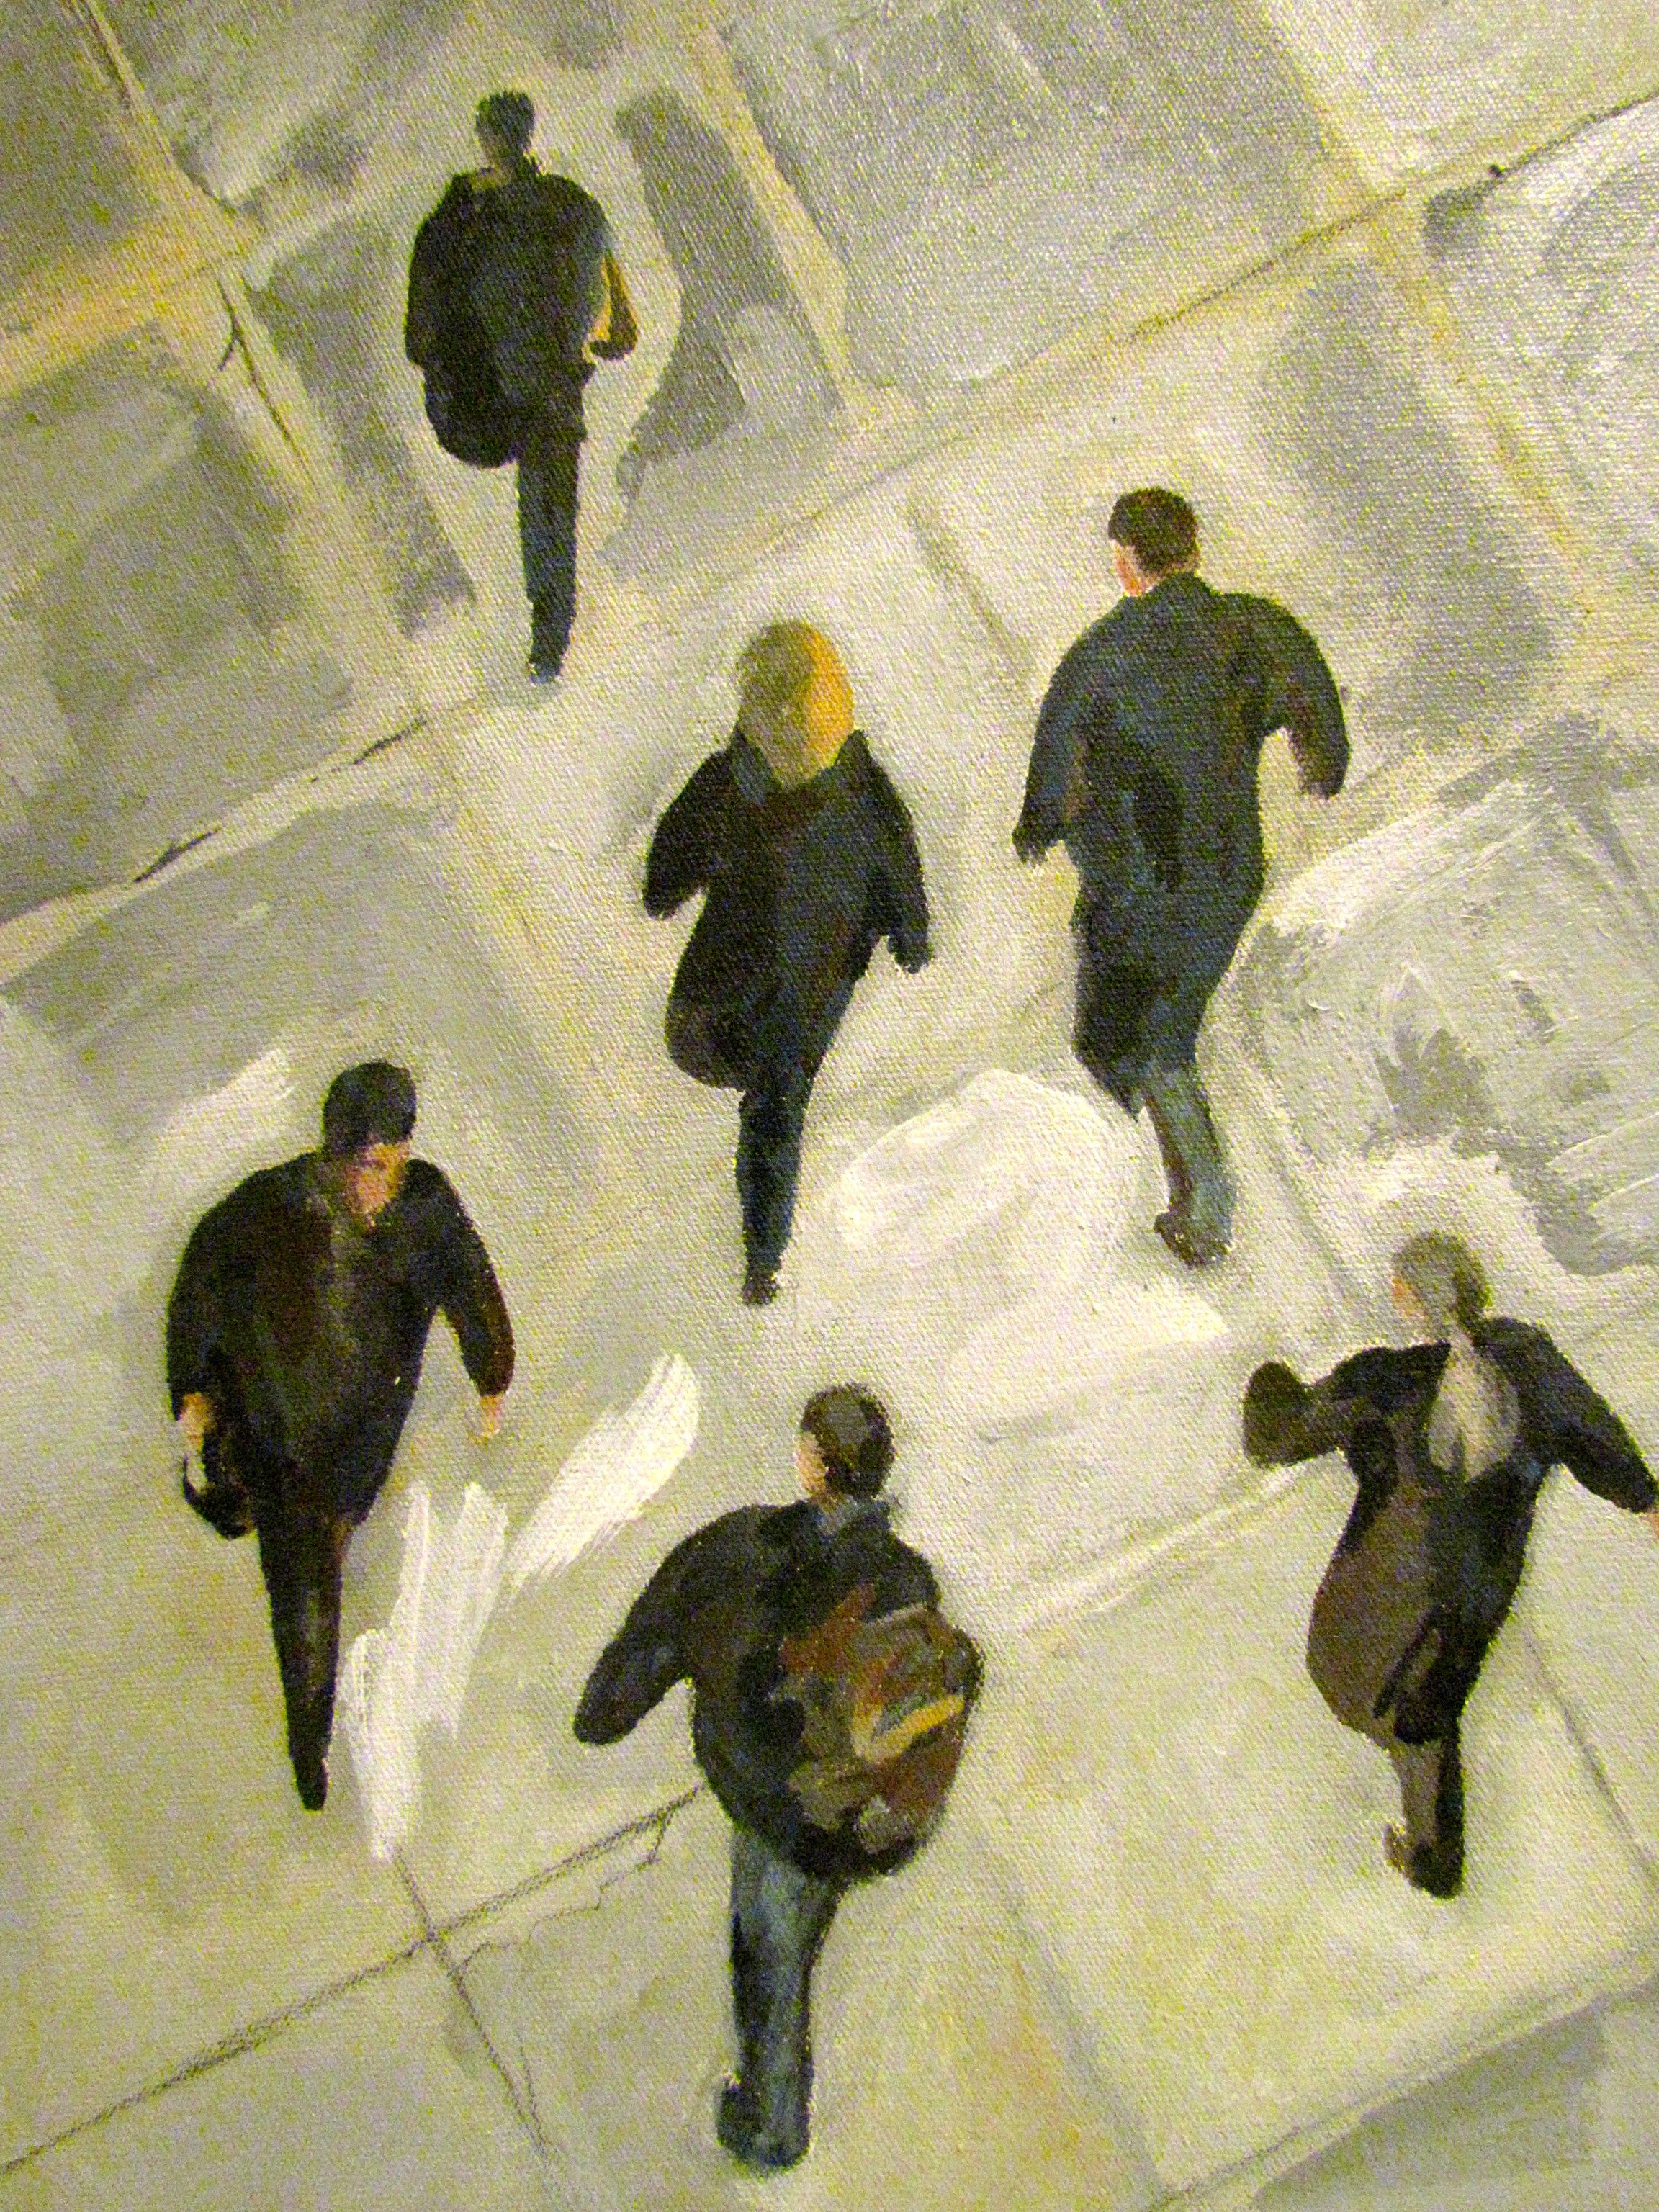 From out the Window (detail)